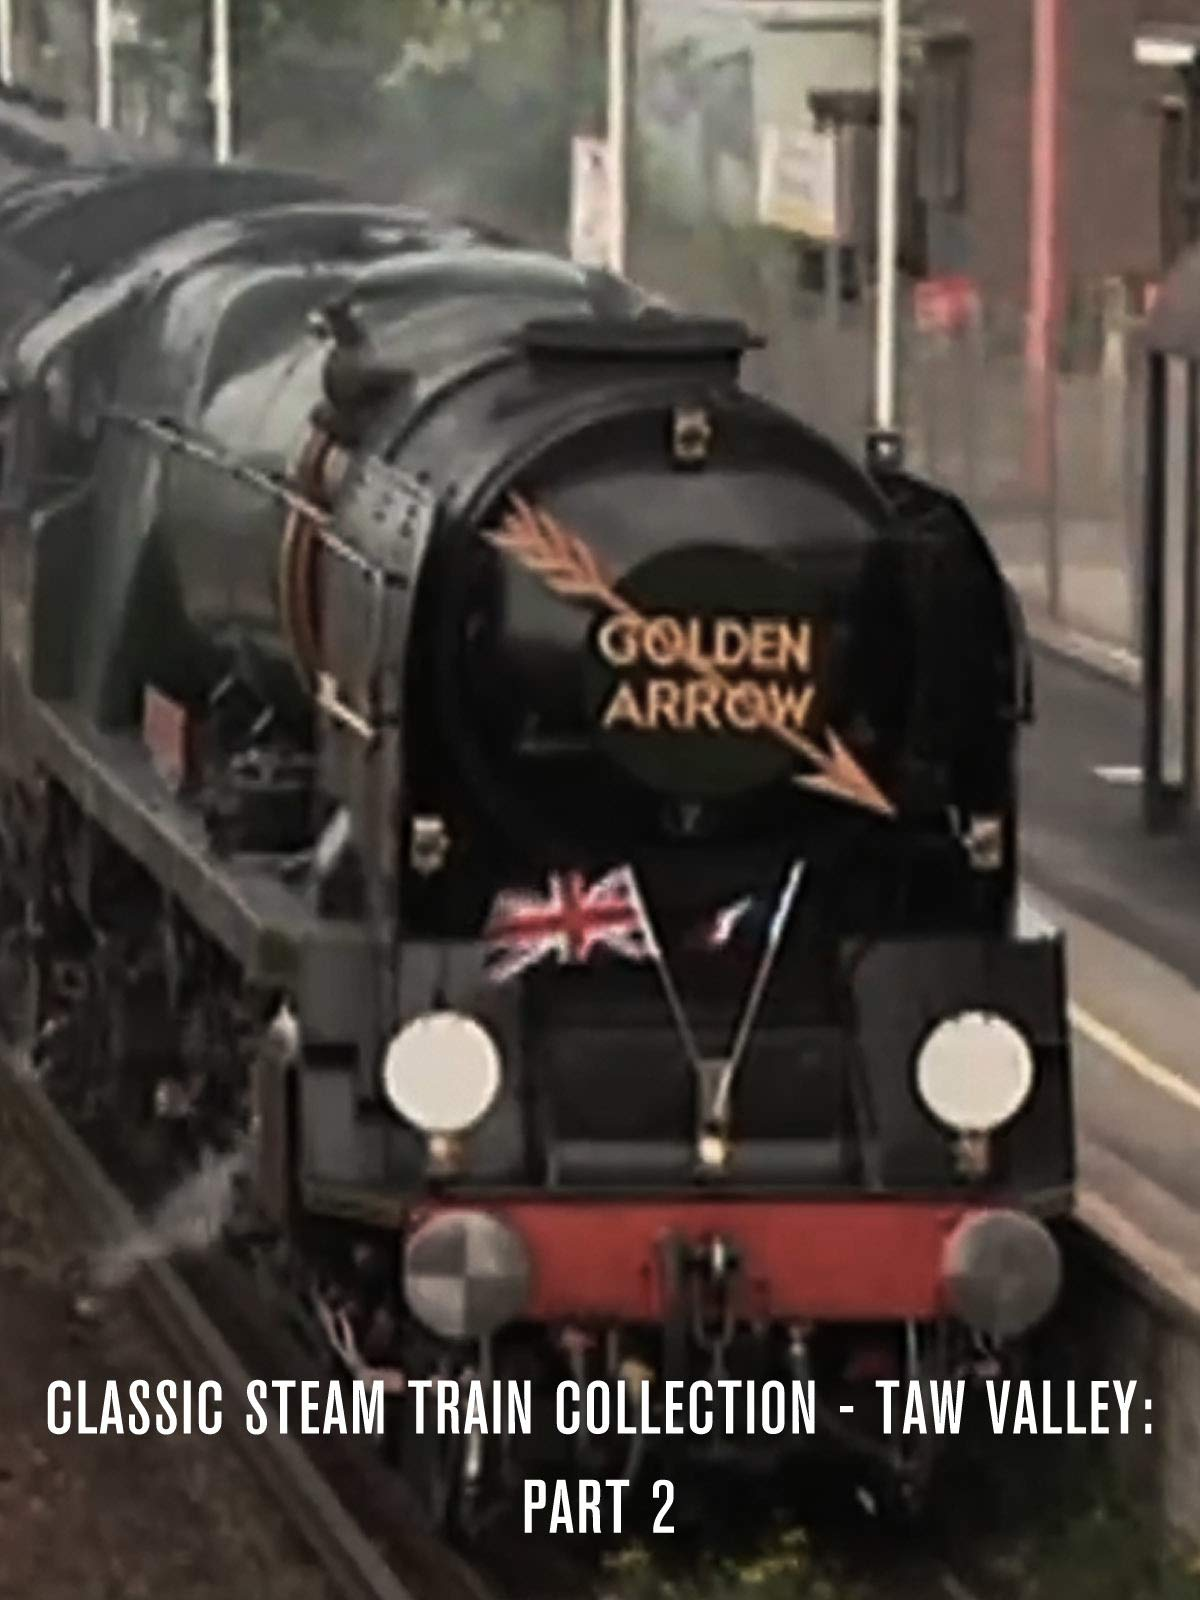 Classic Steam Train Collection - Taw Valley: Part 2